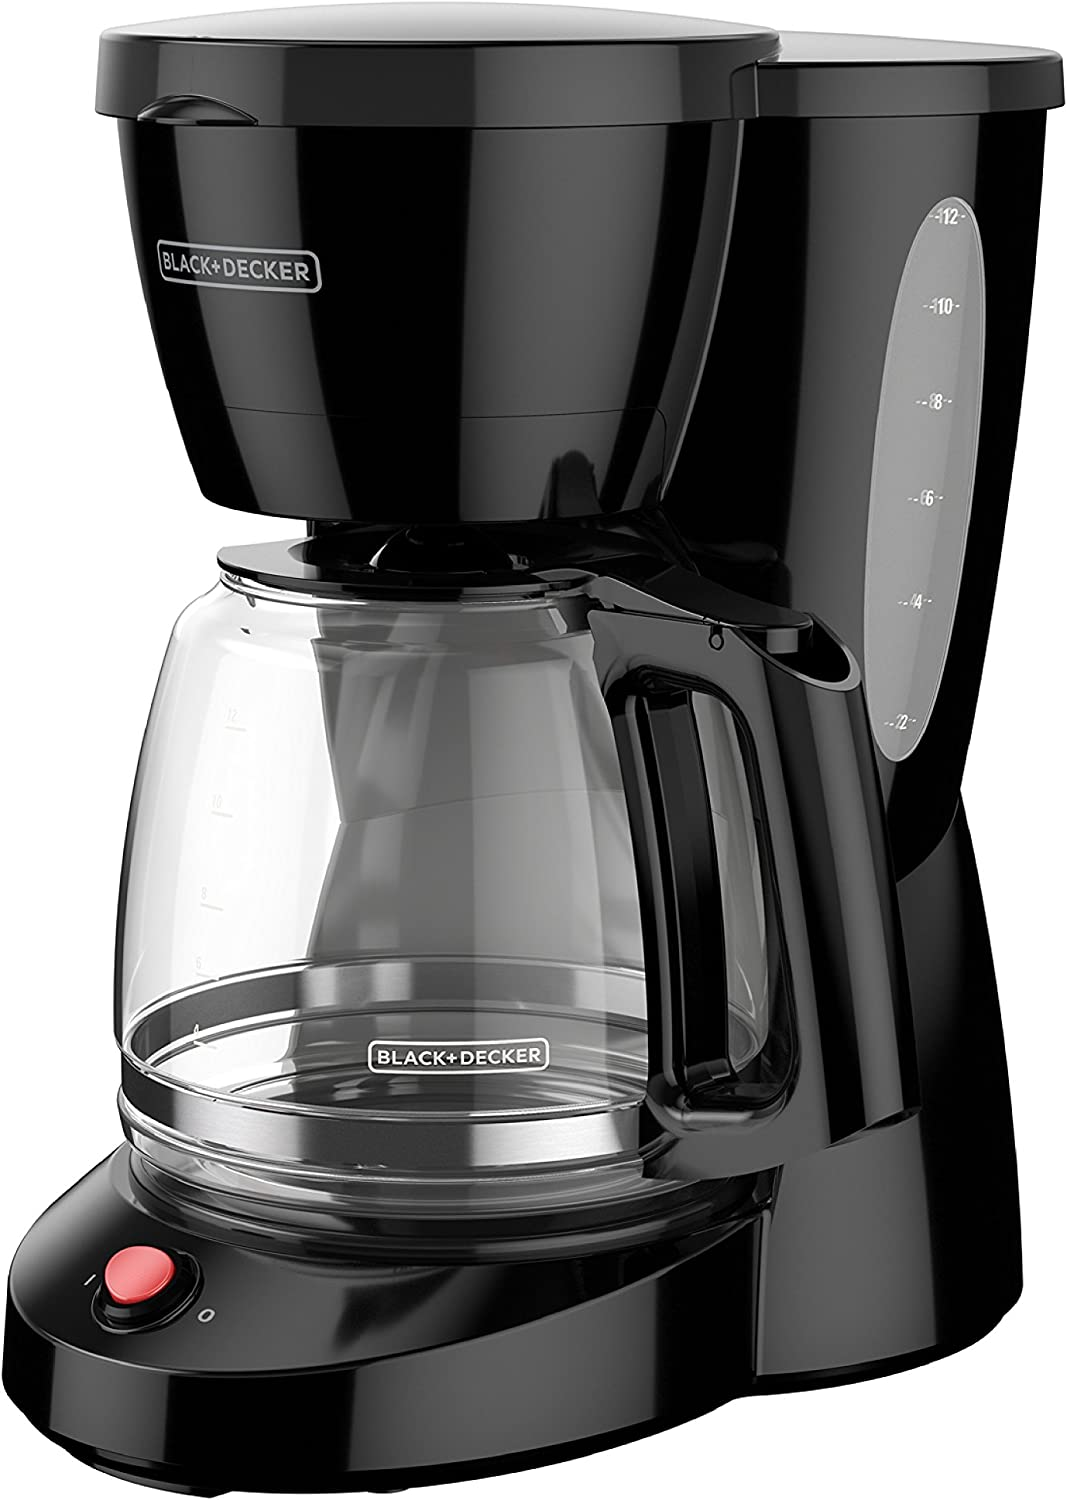 BLACK+DECKER 12-Cup Switch Coffee Maker, Duralife Glass Carafe, Black, CM0940BD